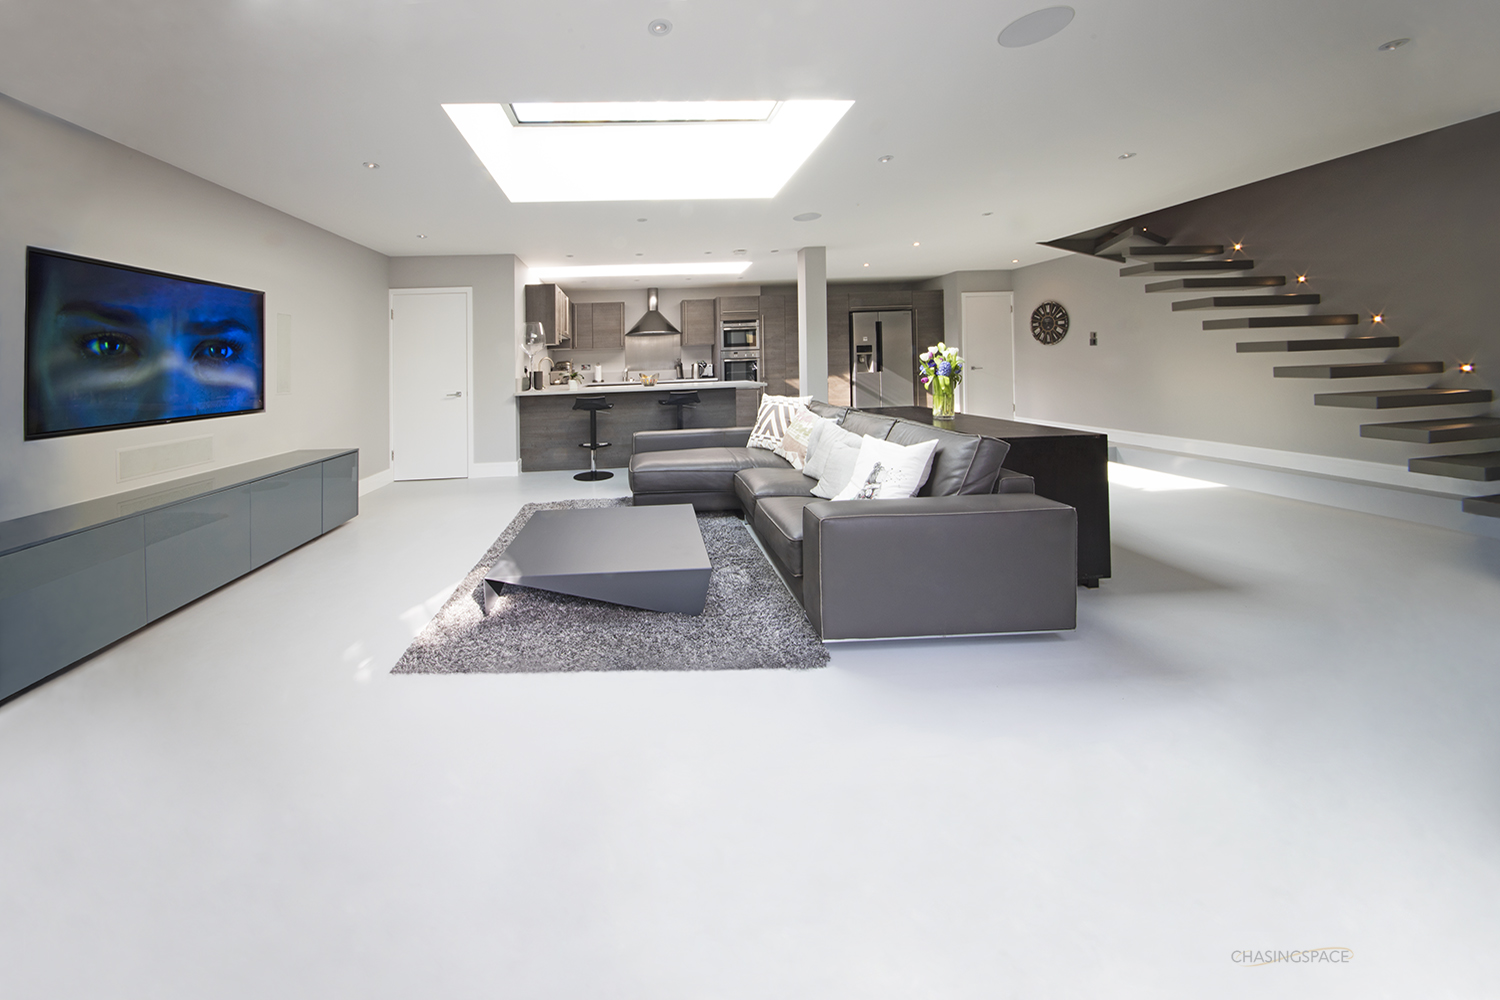 Chasingspace Resin Floors Polished Concrete Walls